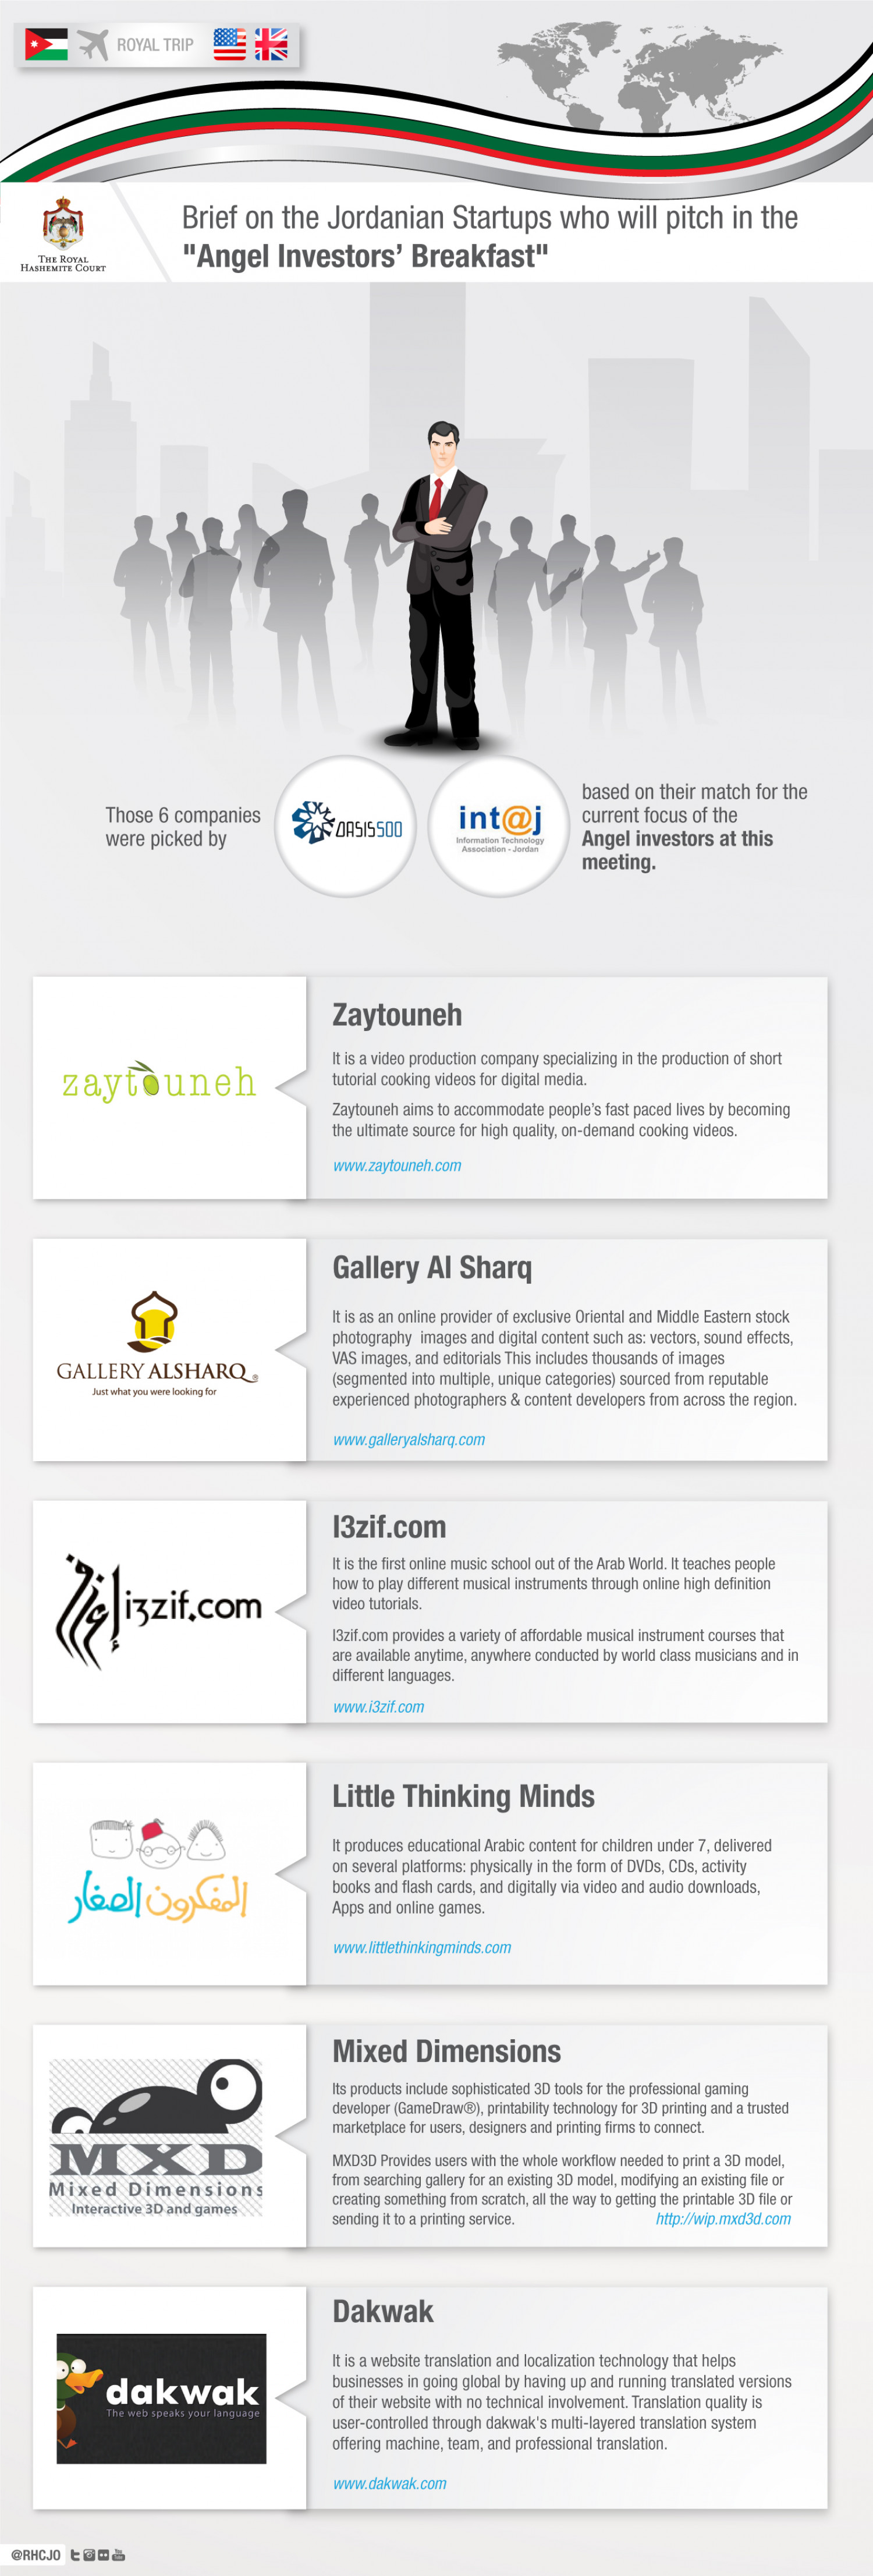 "Brief on the Jordanian Startups who Will Pitch in the ""Angel Investors' Breakfast"" Infographic"